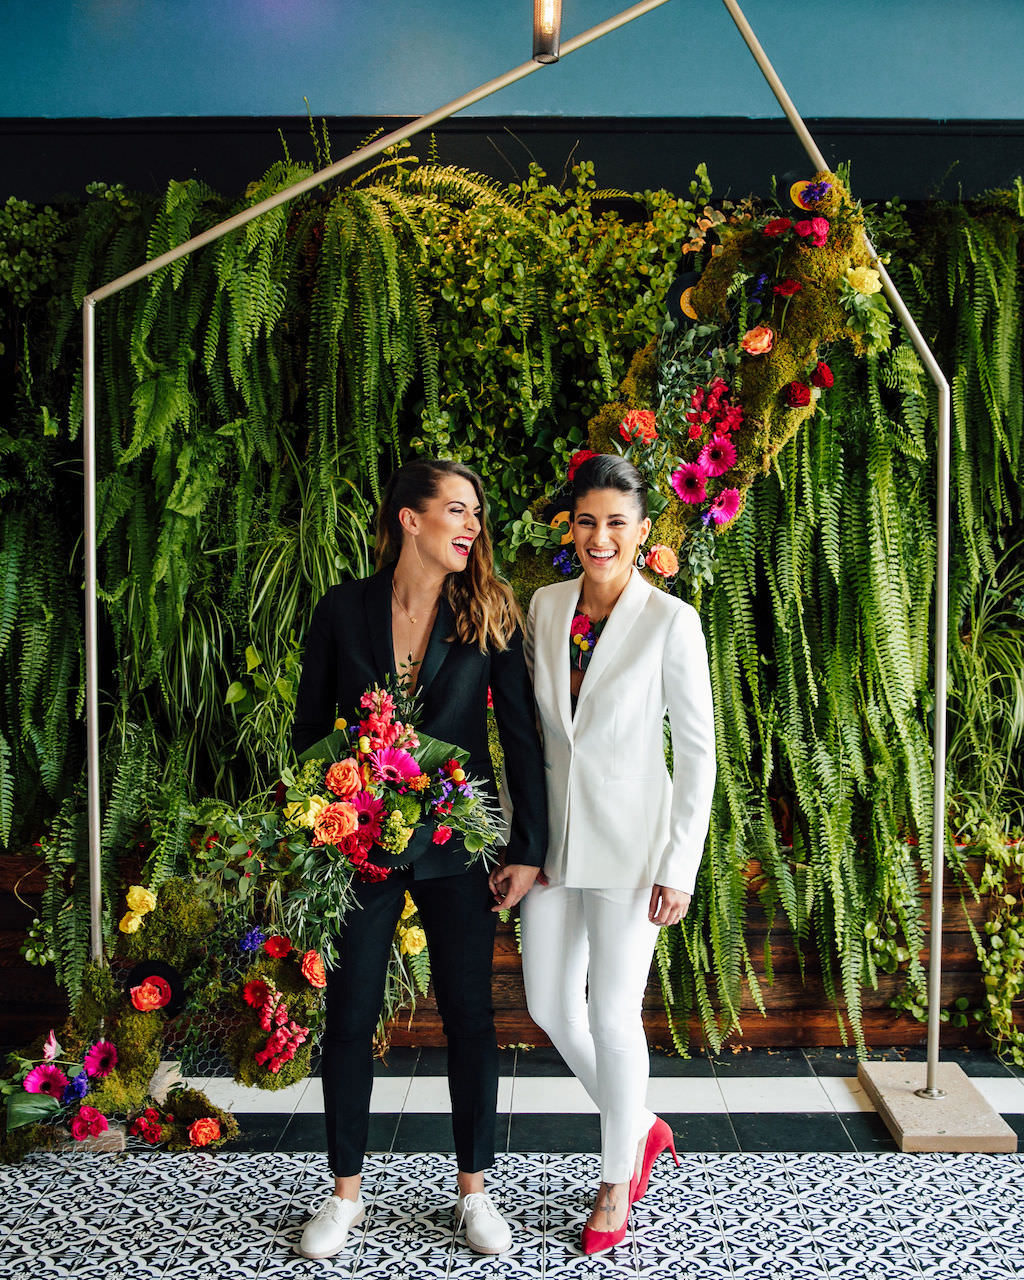 Black and White Women's Tuxedo Wedding Bridal Suits Same Sex Gay Couple | The Groomsmen Suit | Wedding Dress Trends 2019